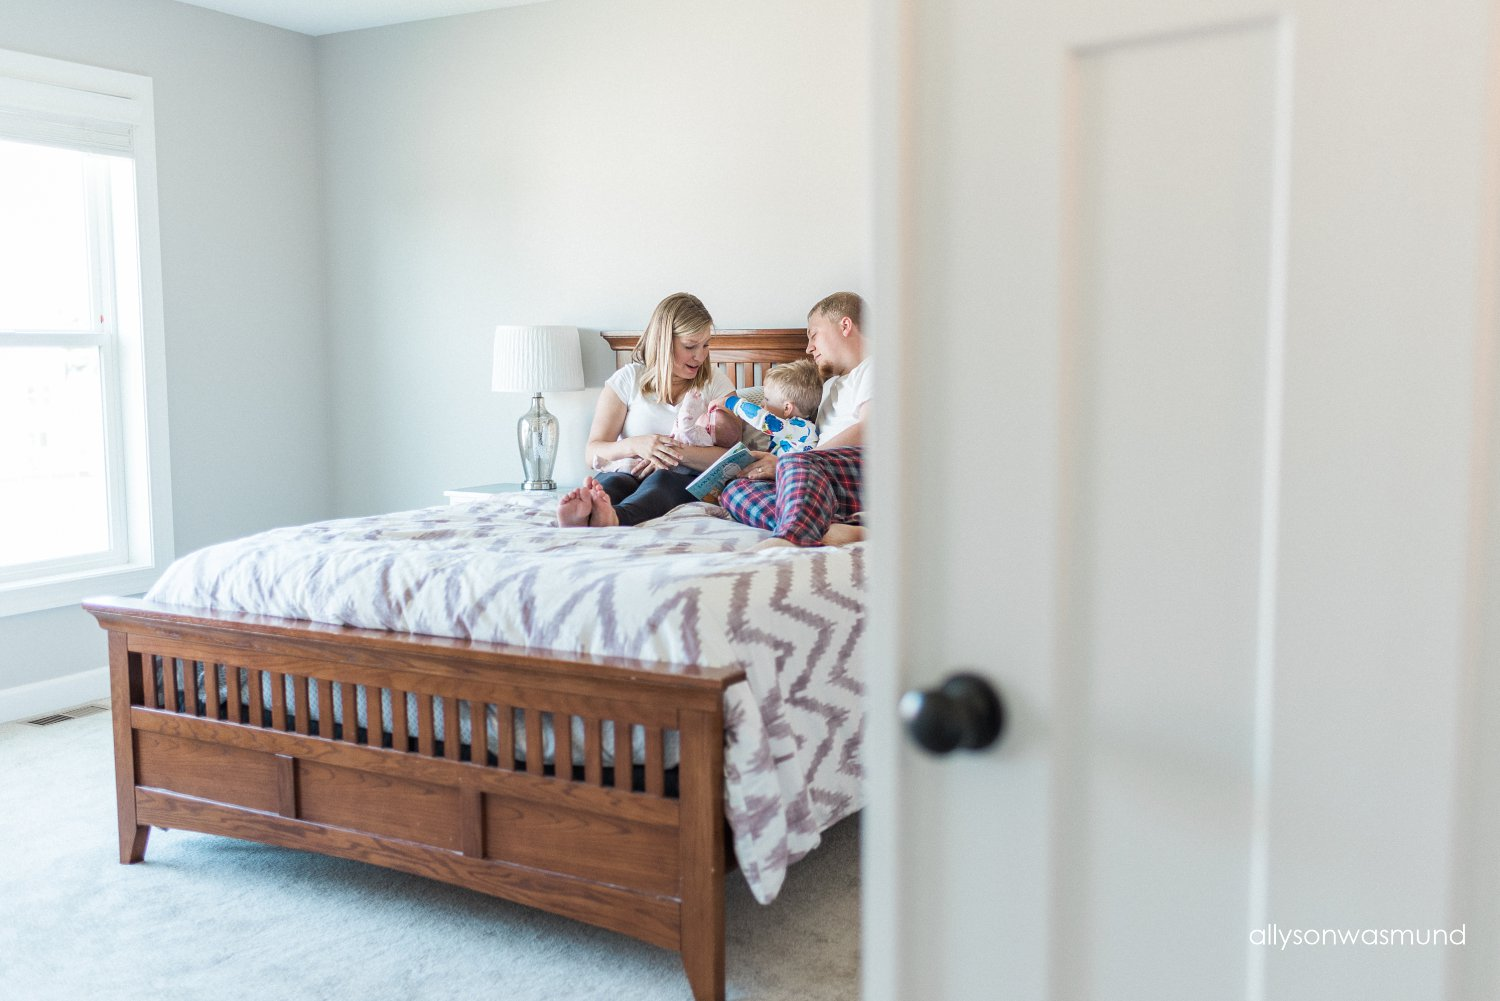 A family of four relaxes in the master bedroom of their Champlin, Minnesota home during their in-home lifestyle newborn session with Allyson Wasmund Photography.